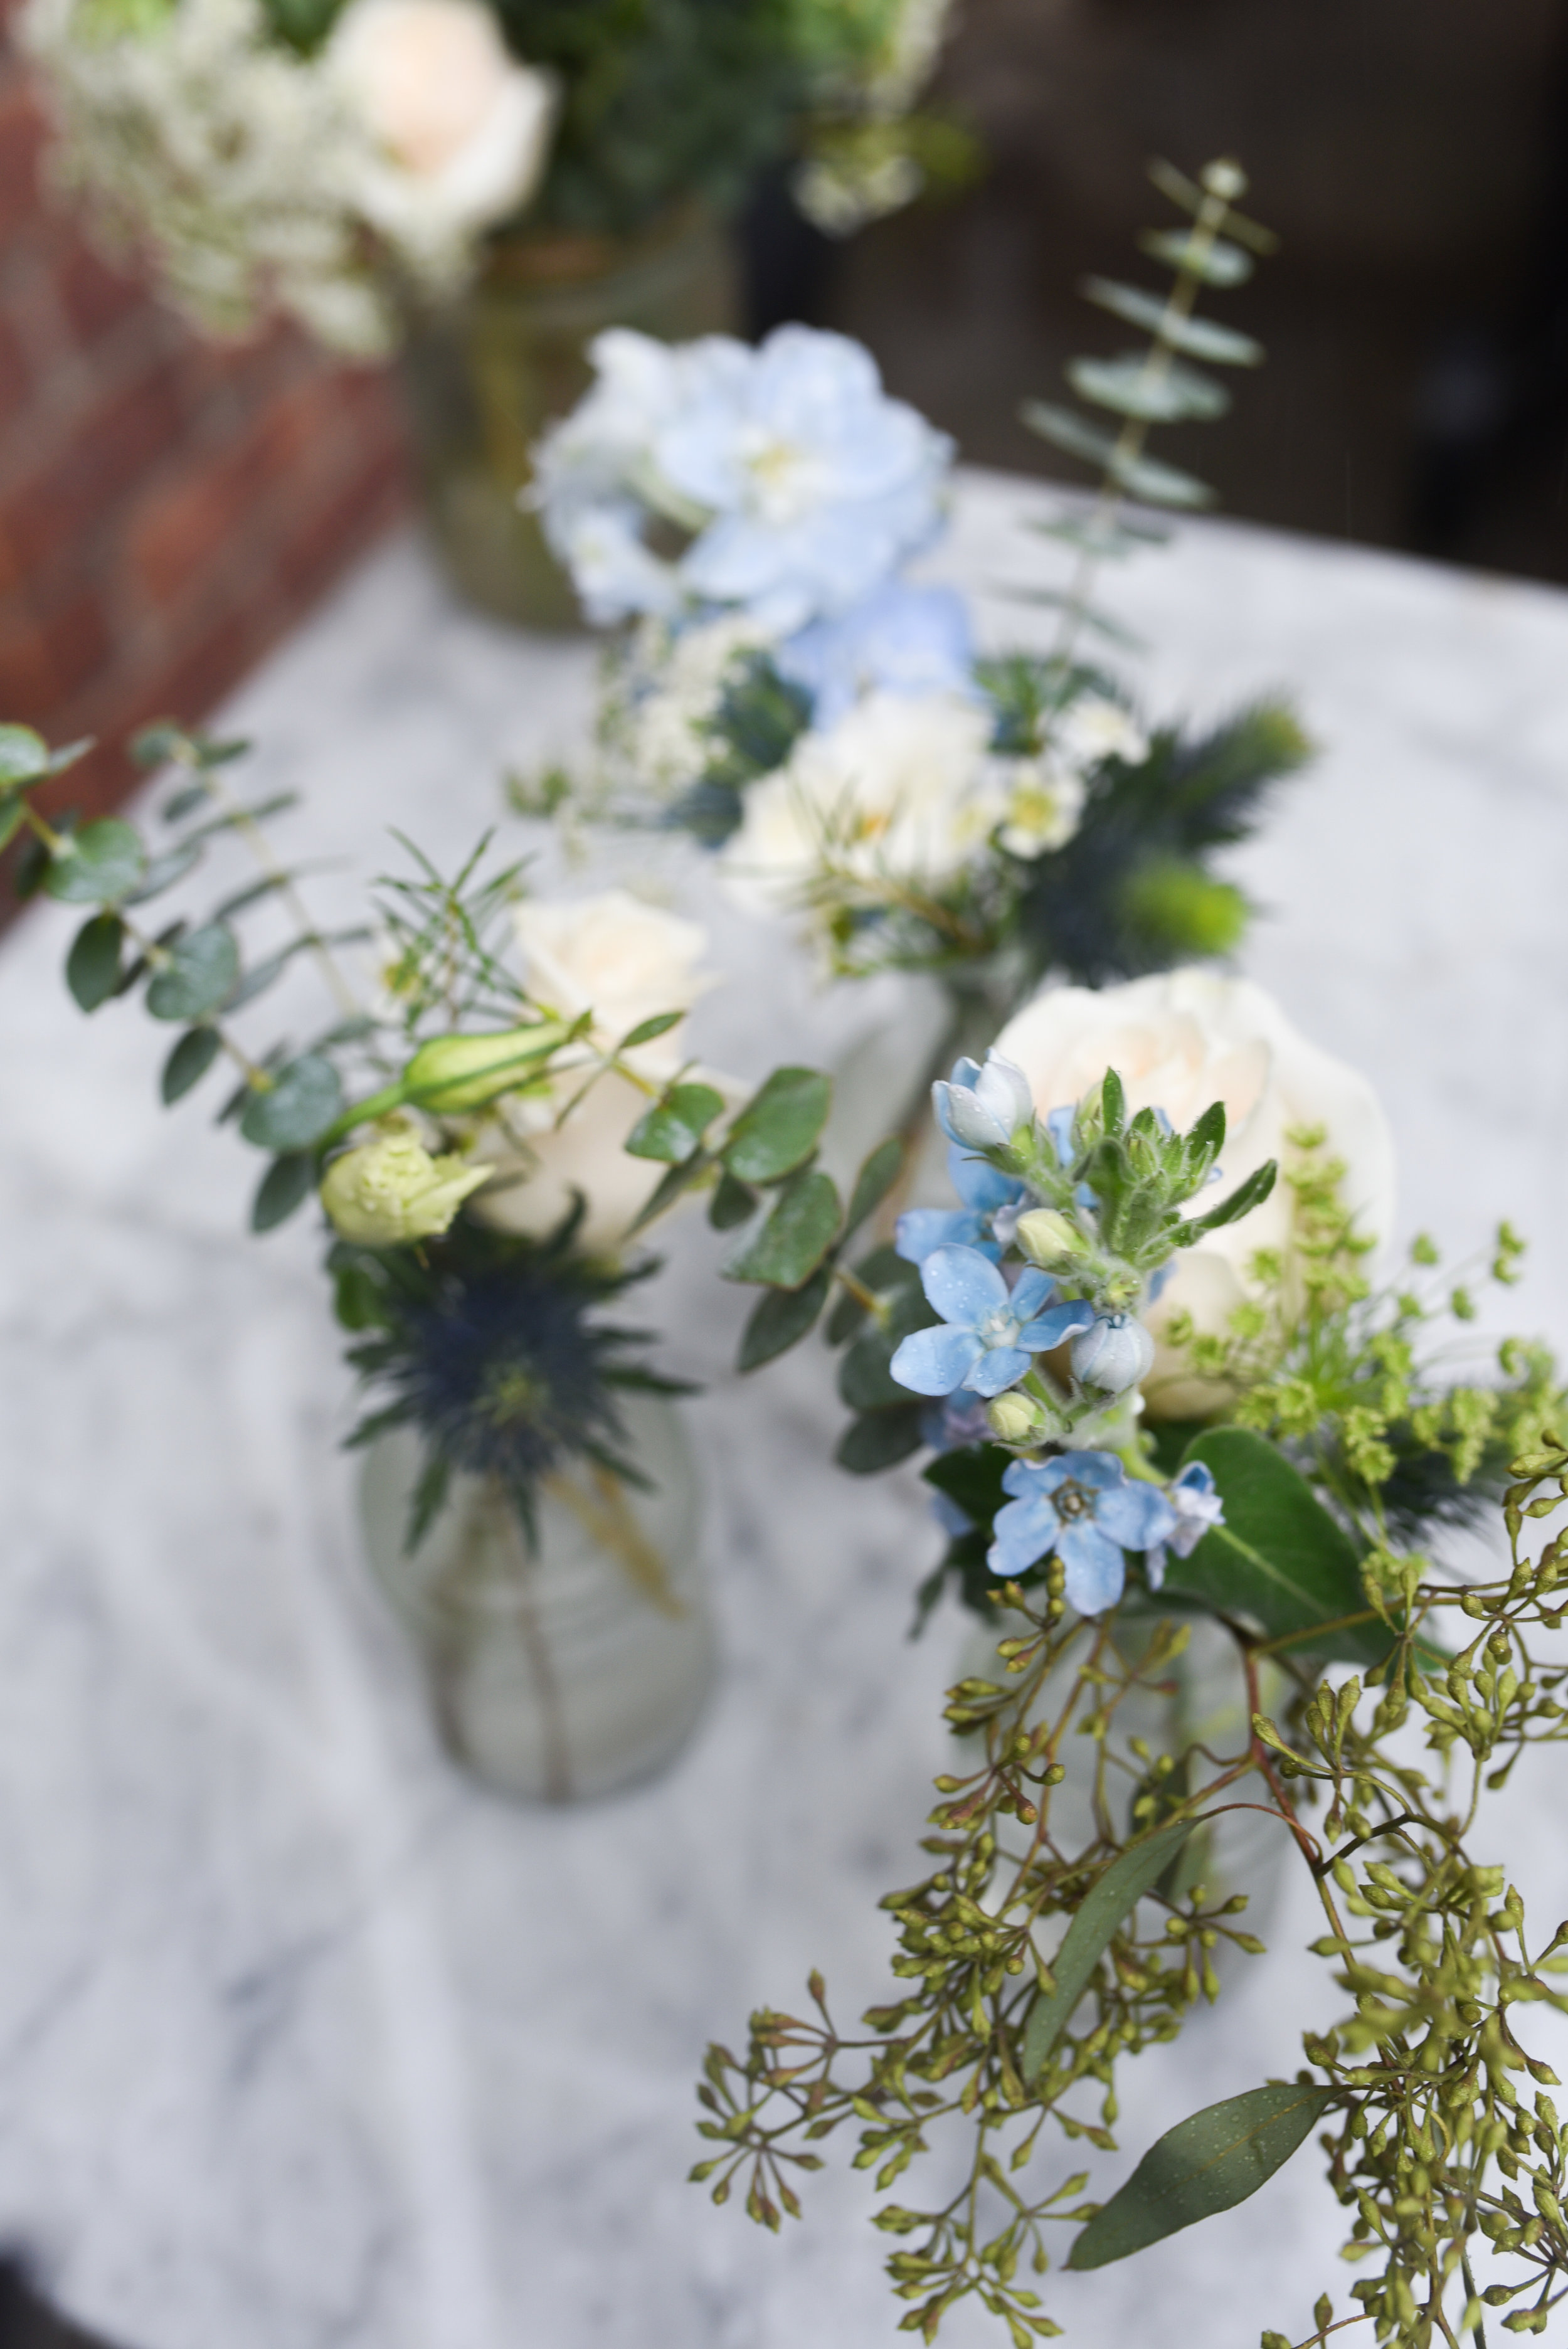 Clear bud vases with blue and white flowers look like a natural English garden at this Brooklyn wedding